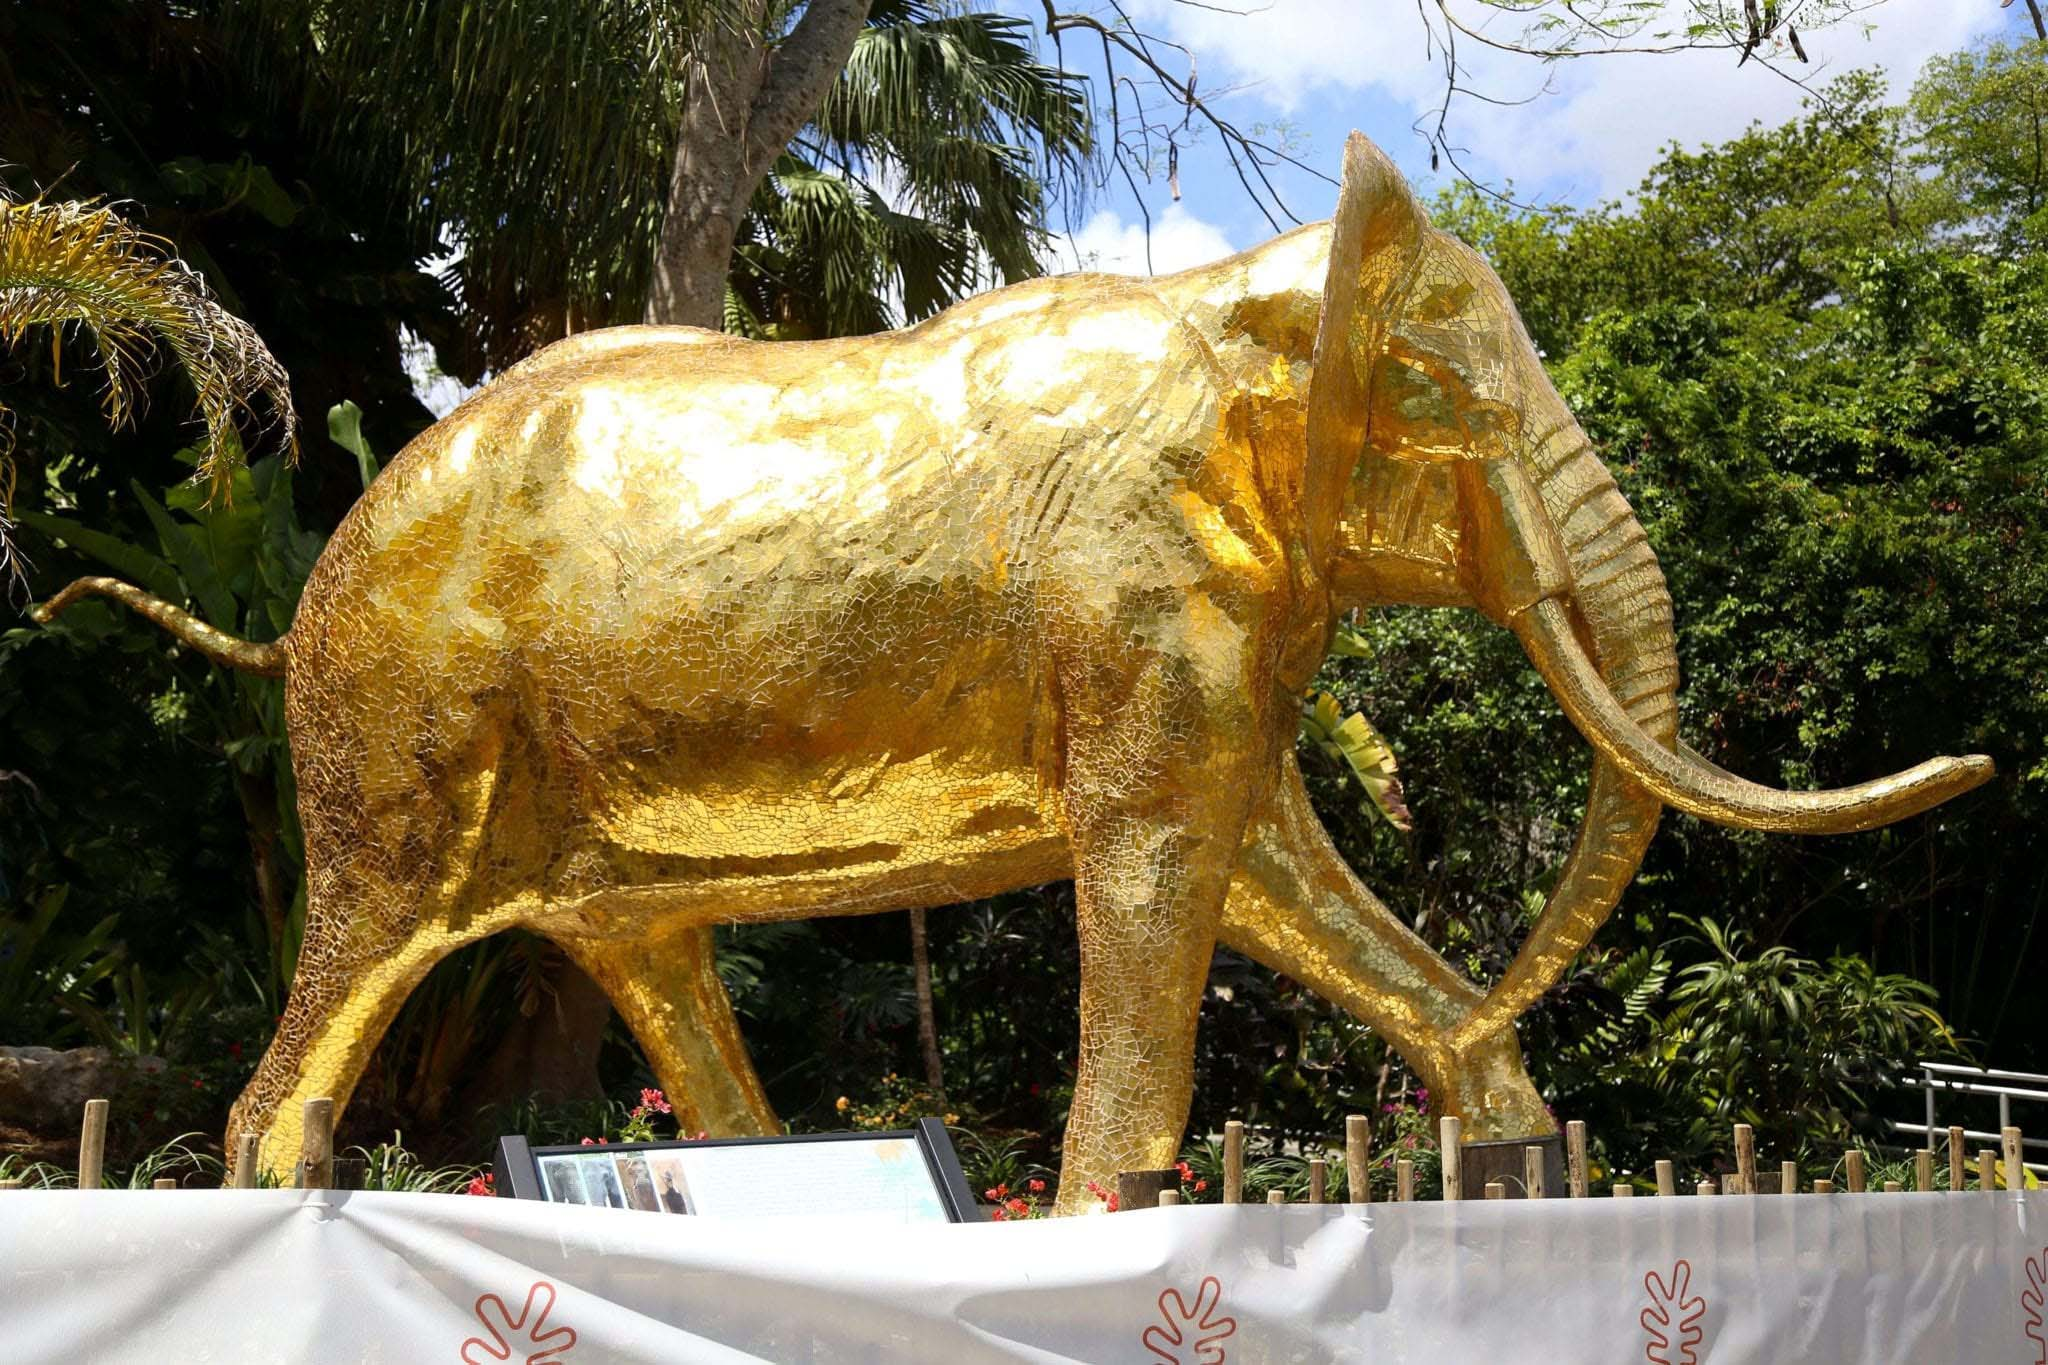 The Golden Elephant_Zoo Miami_Miami_USA